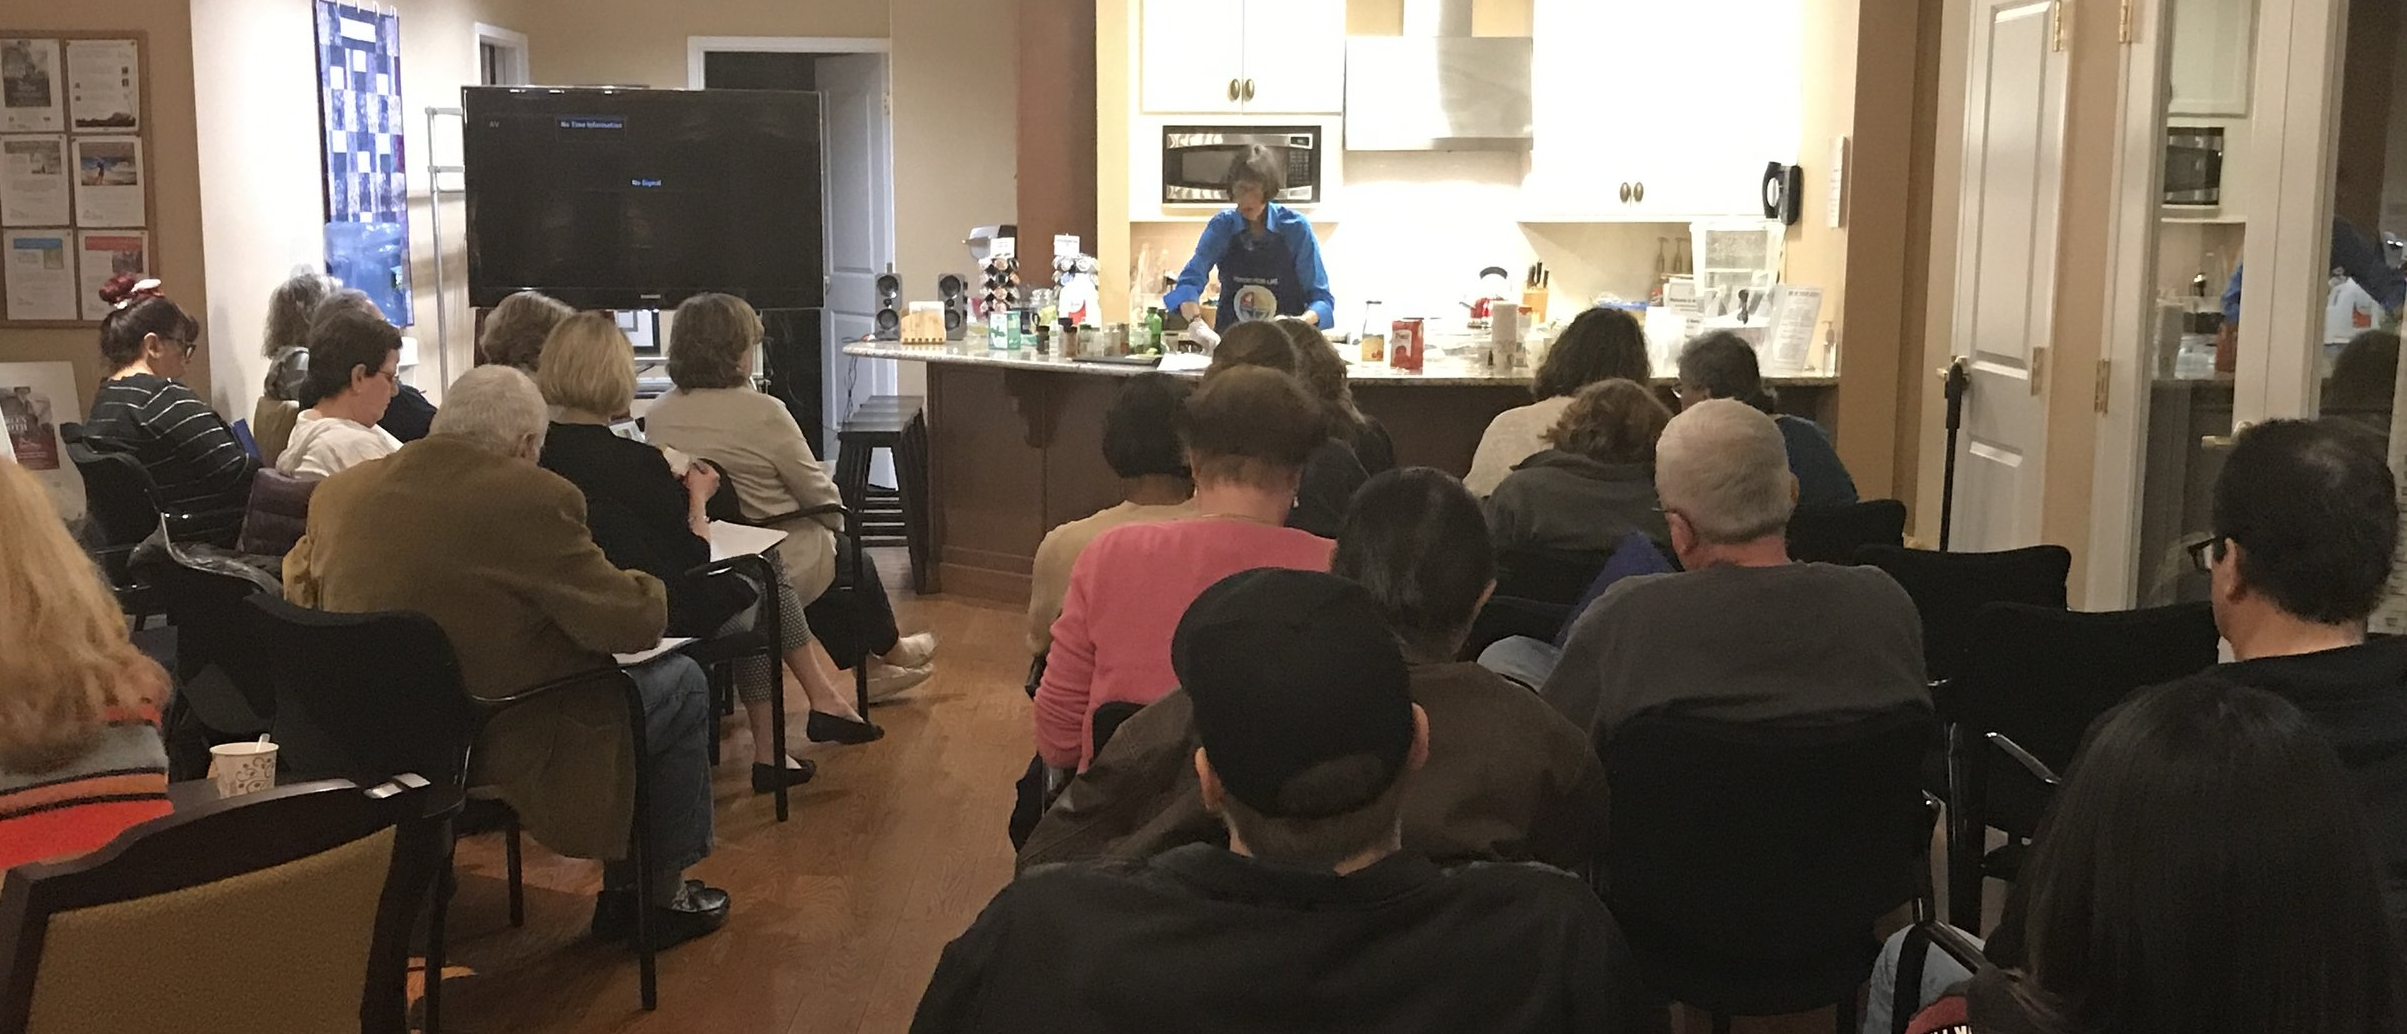 Ann's Place offers live cooking demonstrations in Cooper's Kitchen.